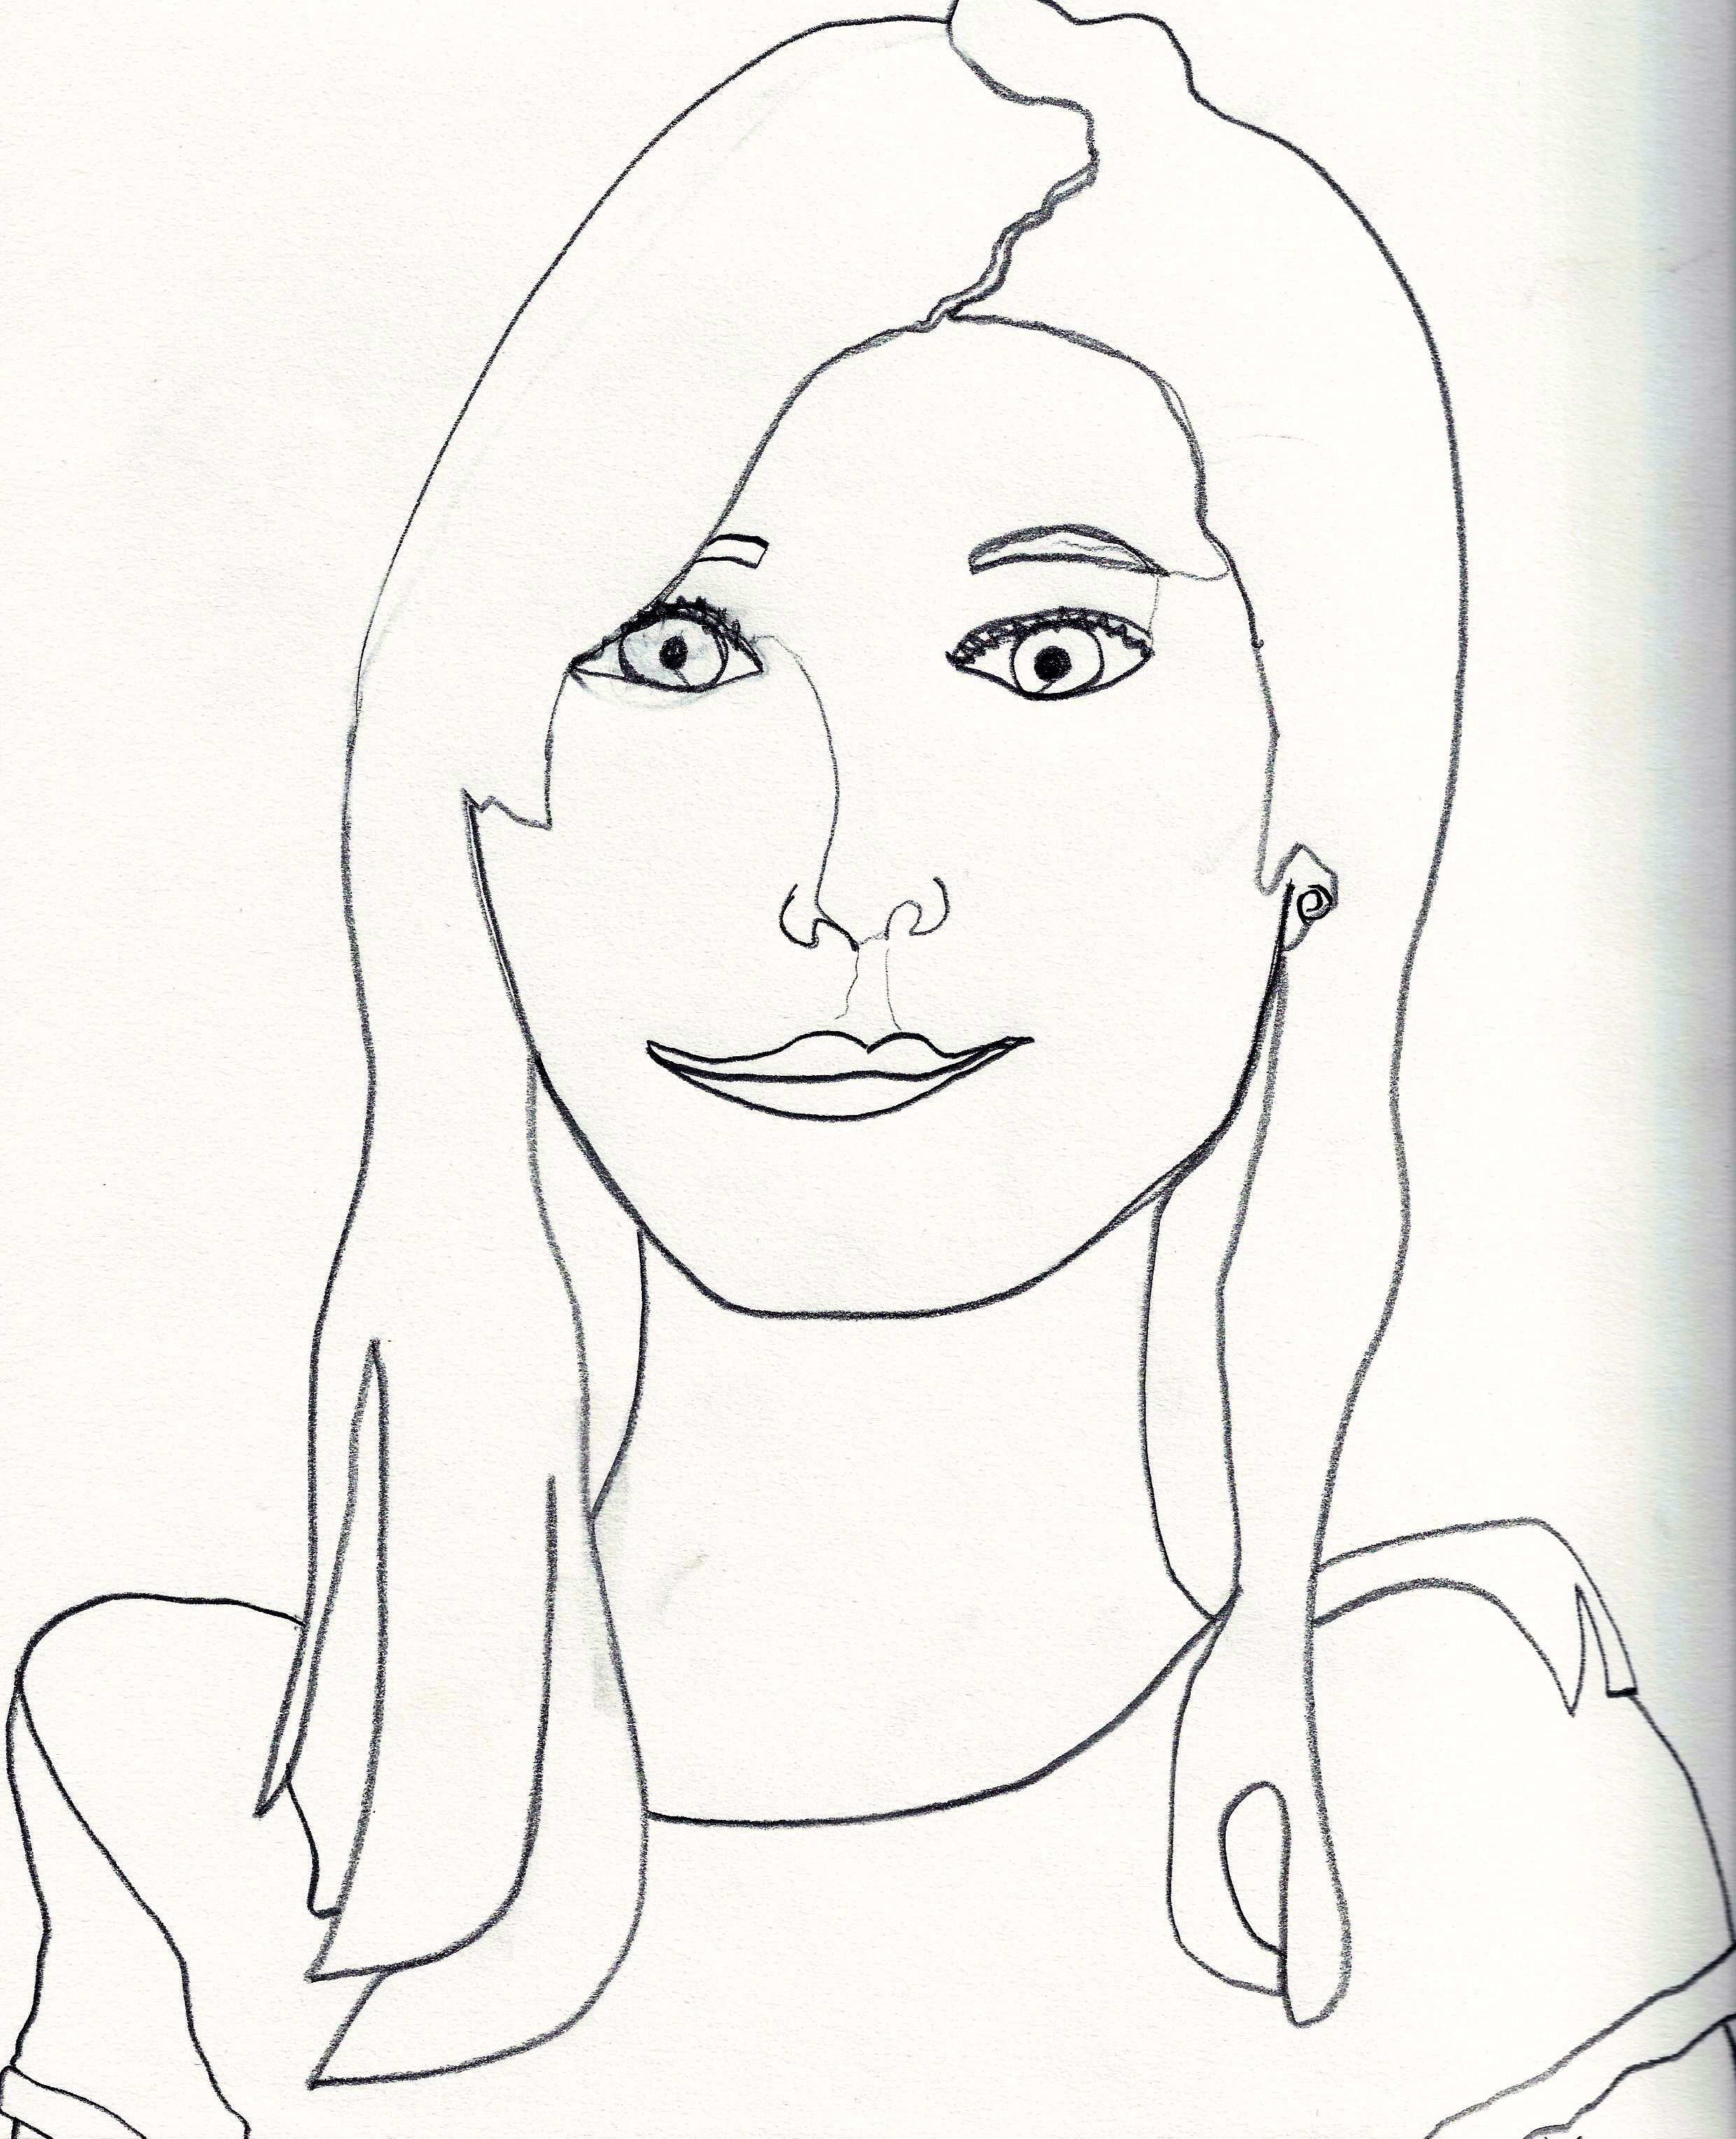 Teachertube Contour Line Drawing : One line contour drawing self portrait contours